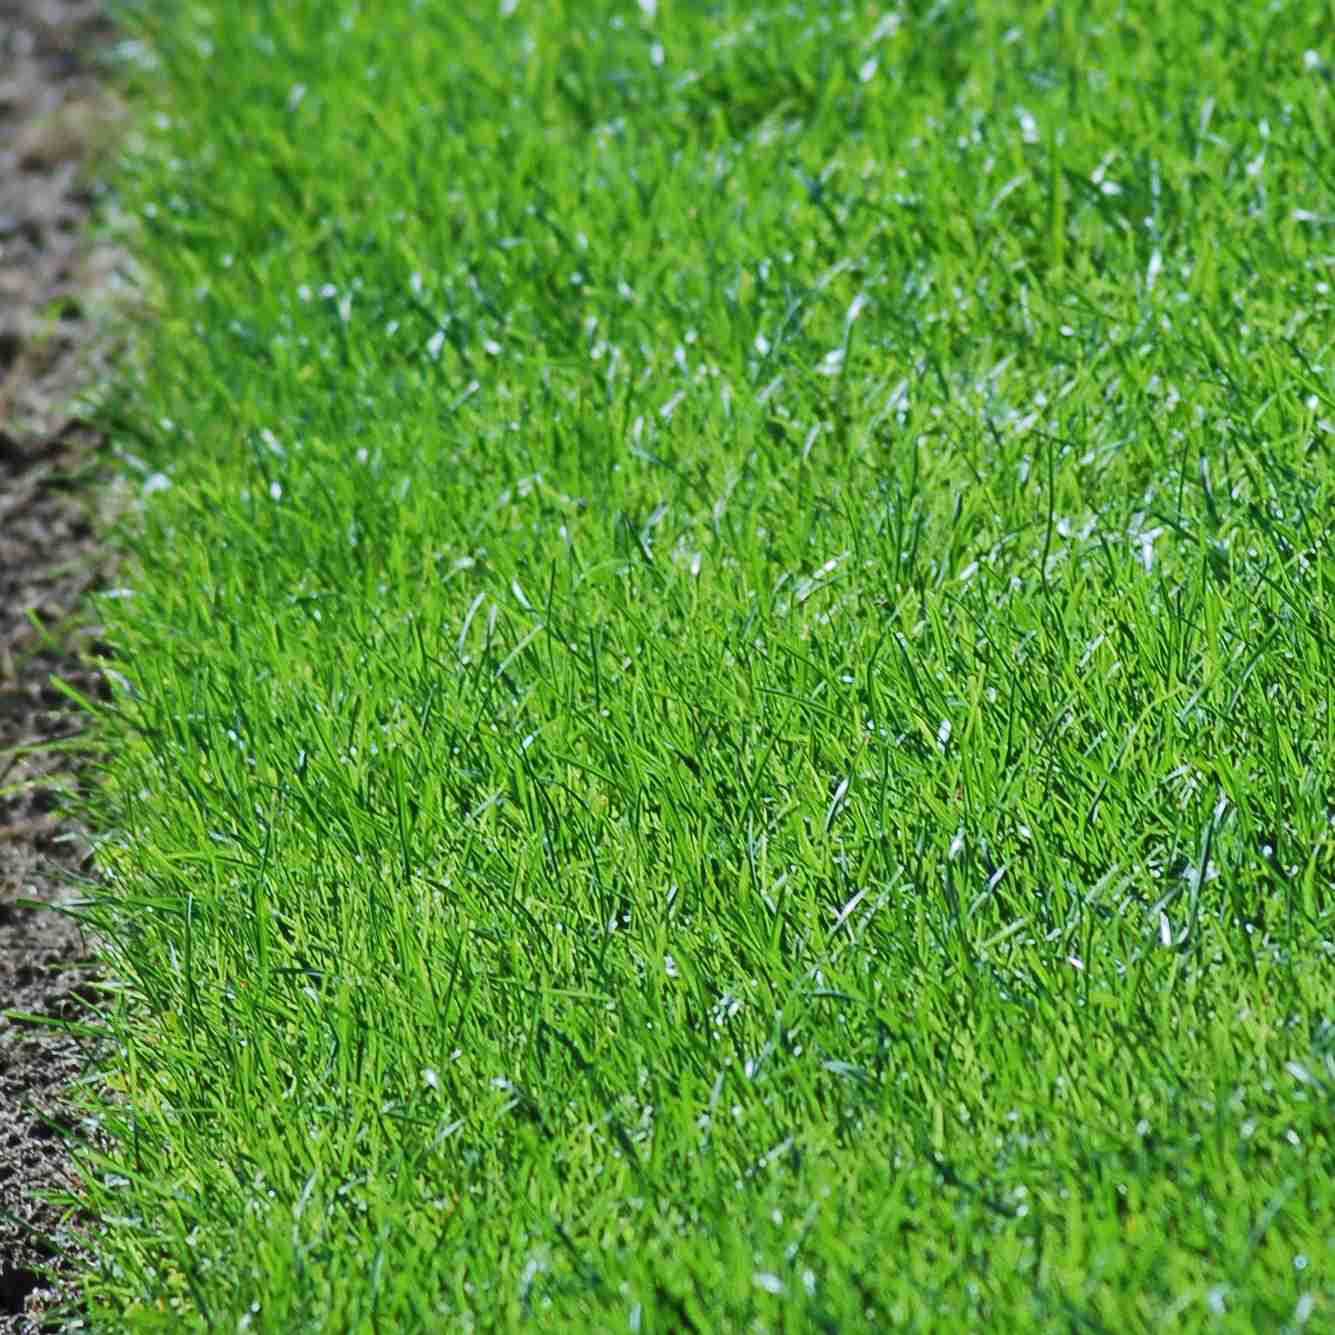 Don't scalp your lawn if you want to have healthy grass (image).